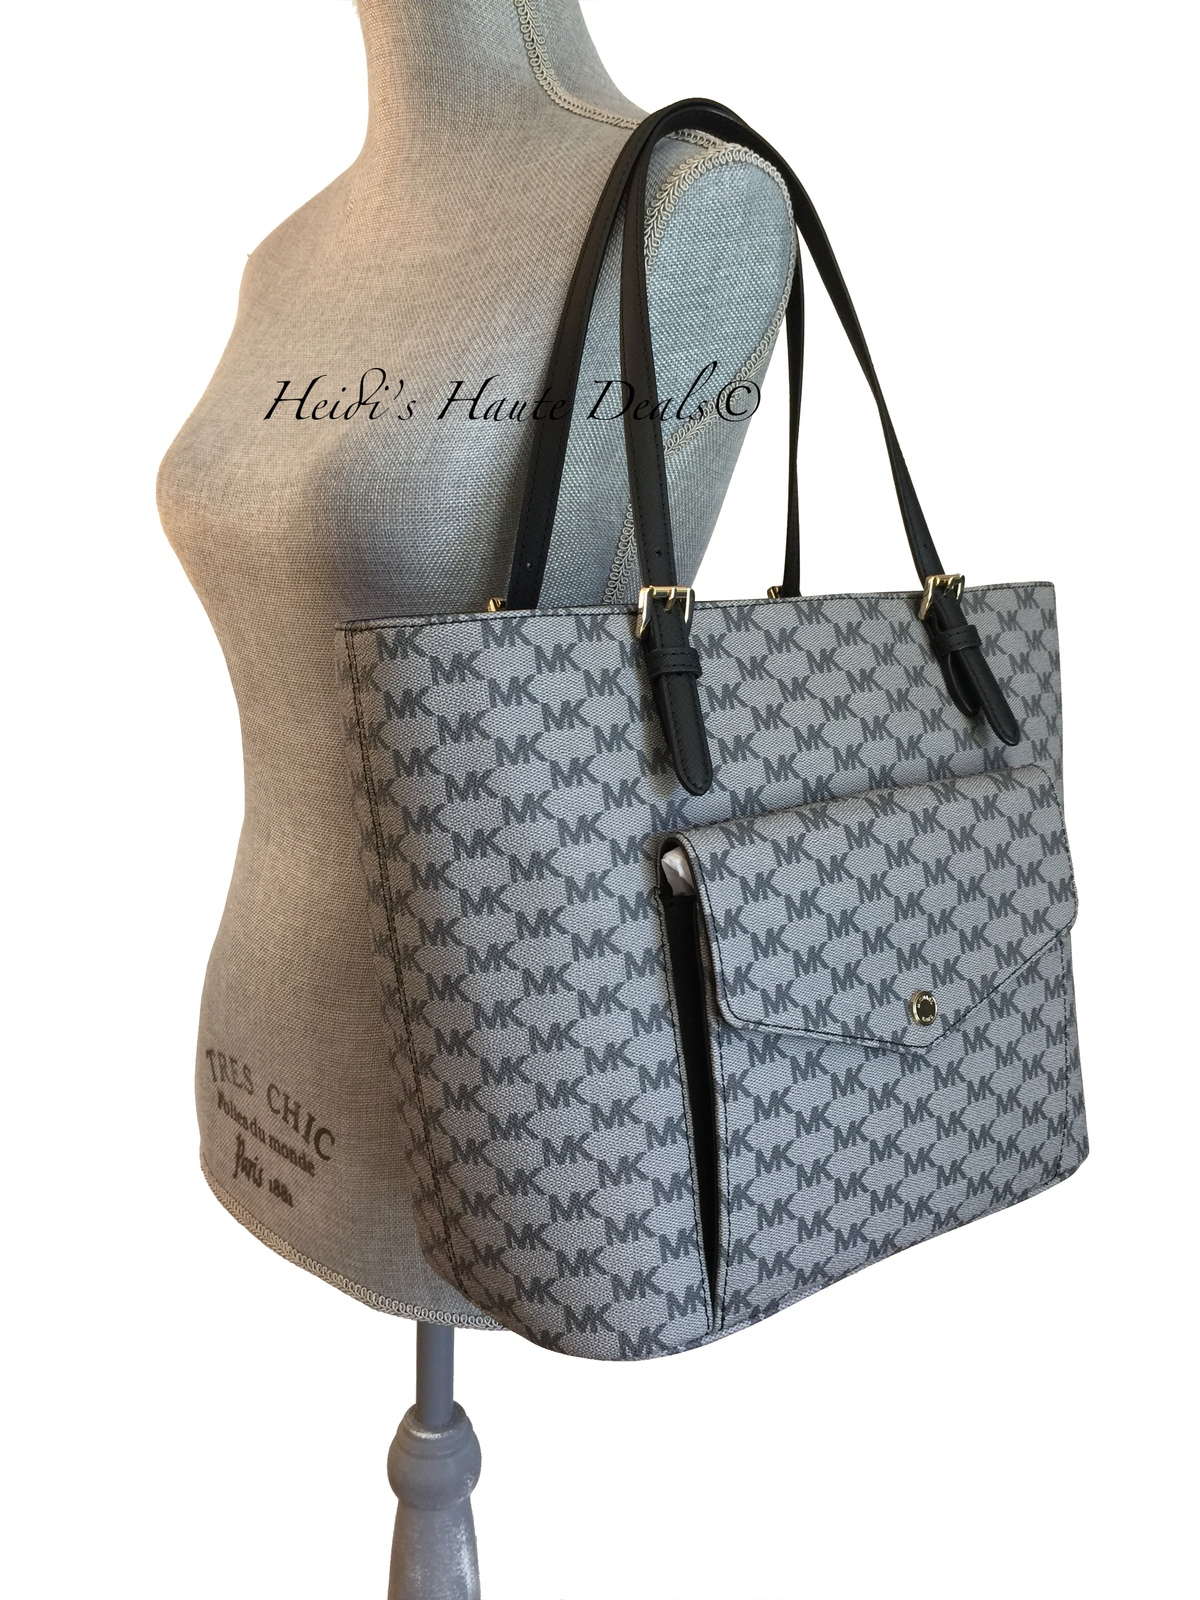 3ace64a417ea NWT MICHAEL KORS Jet Set Large Pocket Tote Black Gray Logo Multi Function  Bag